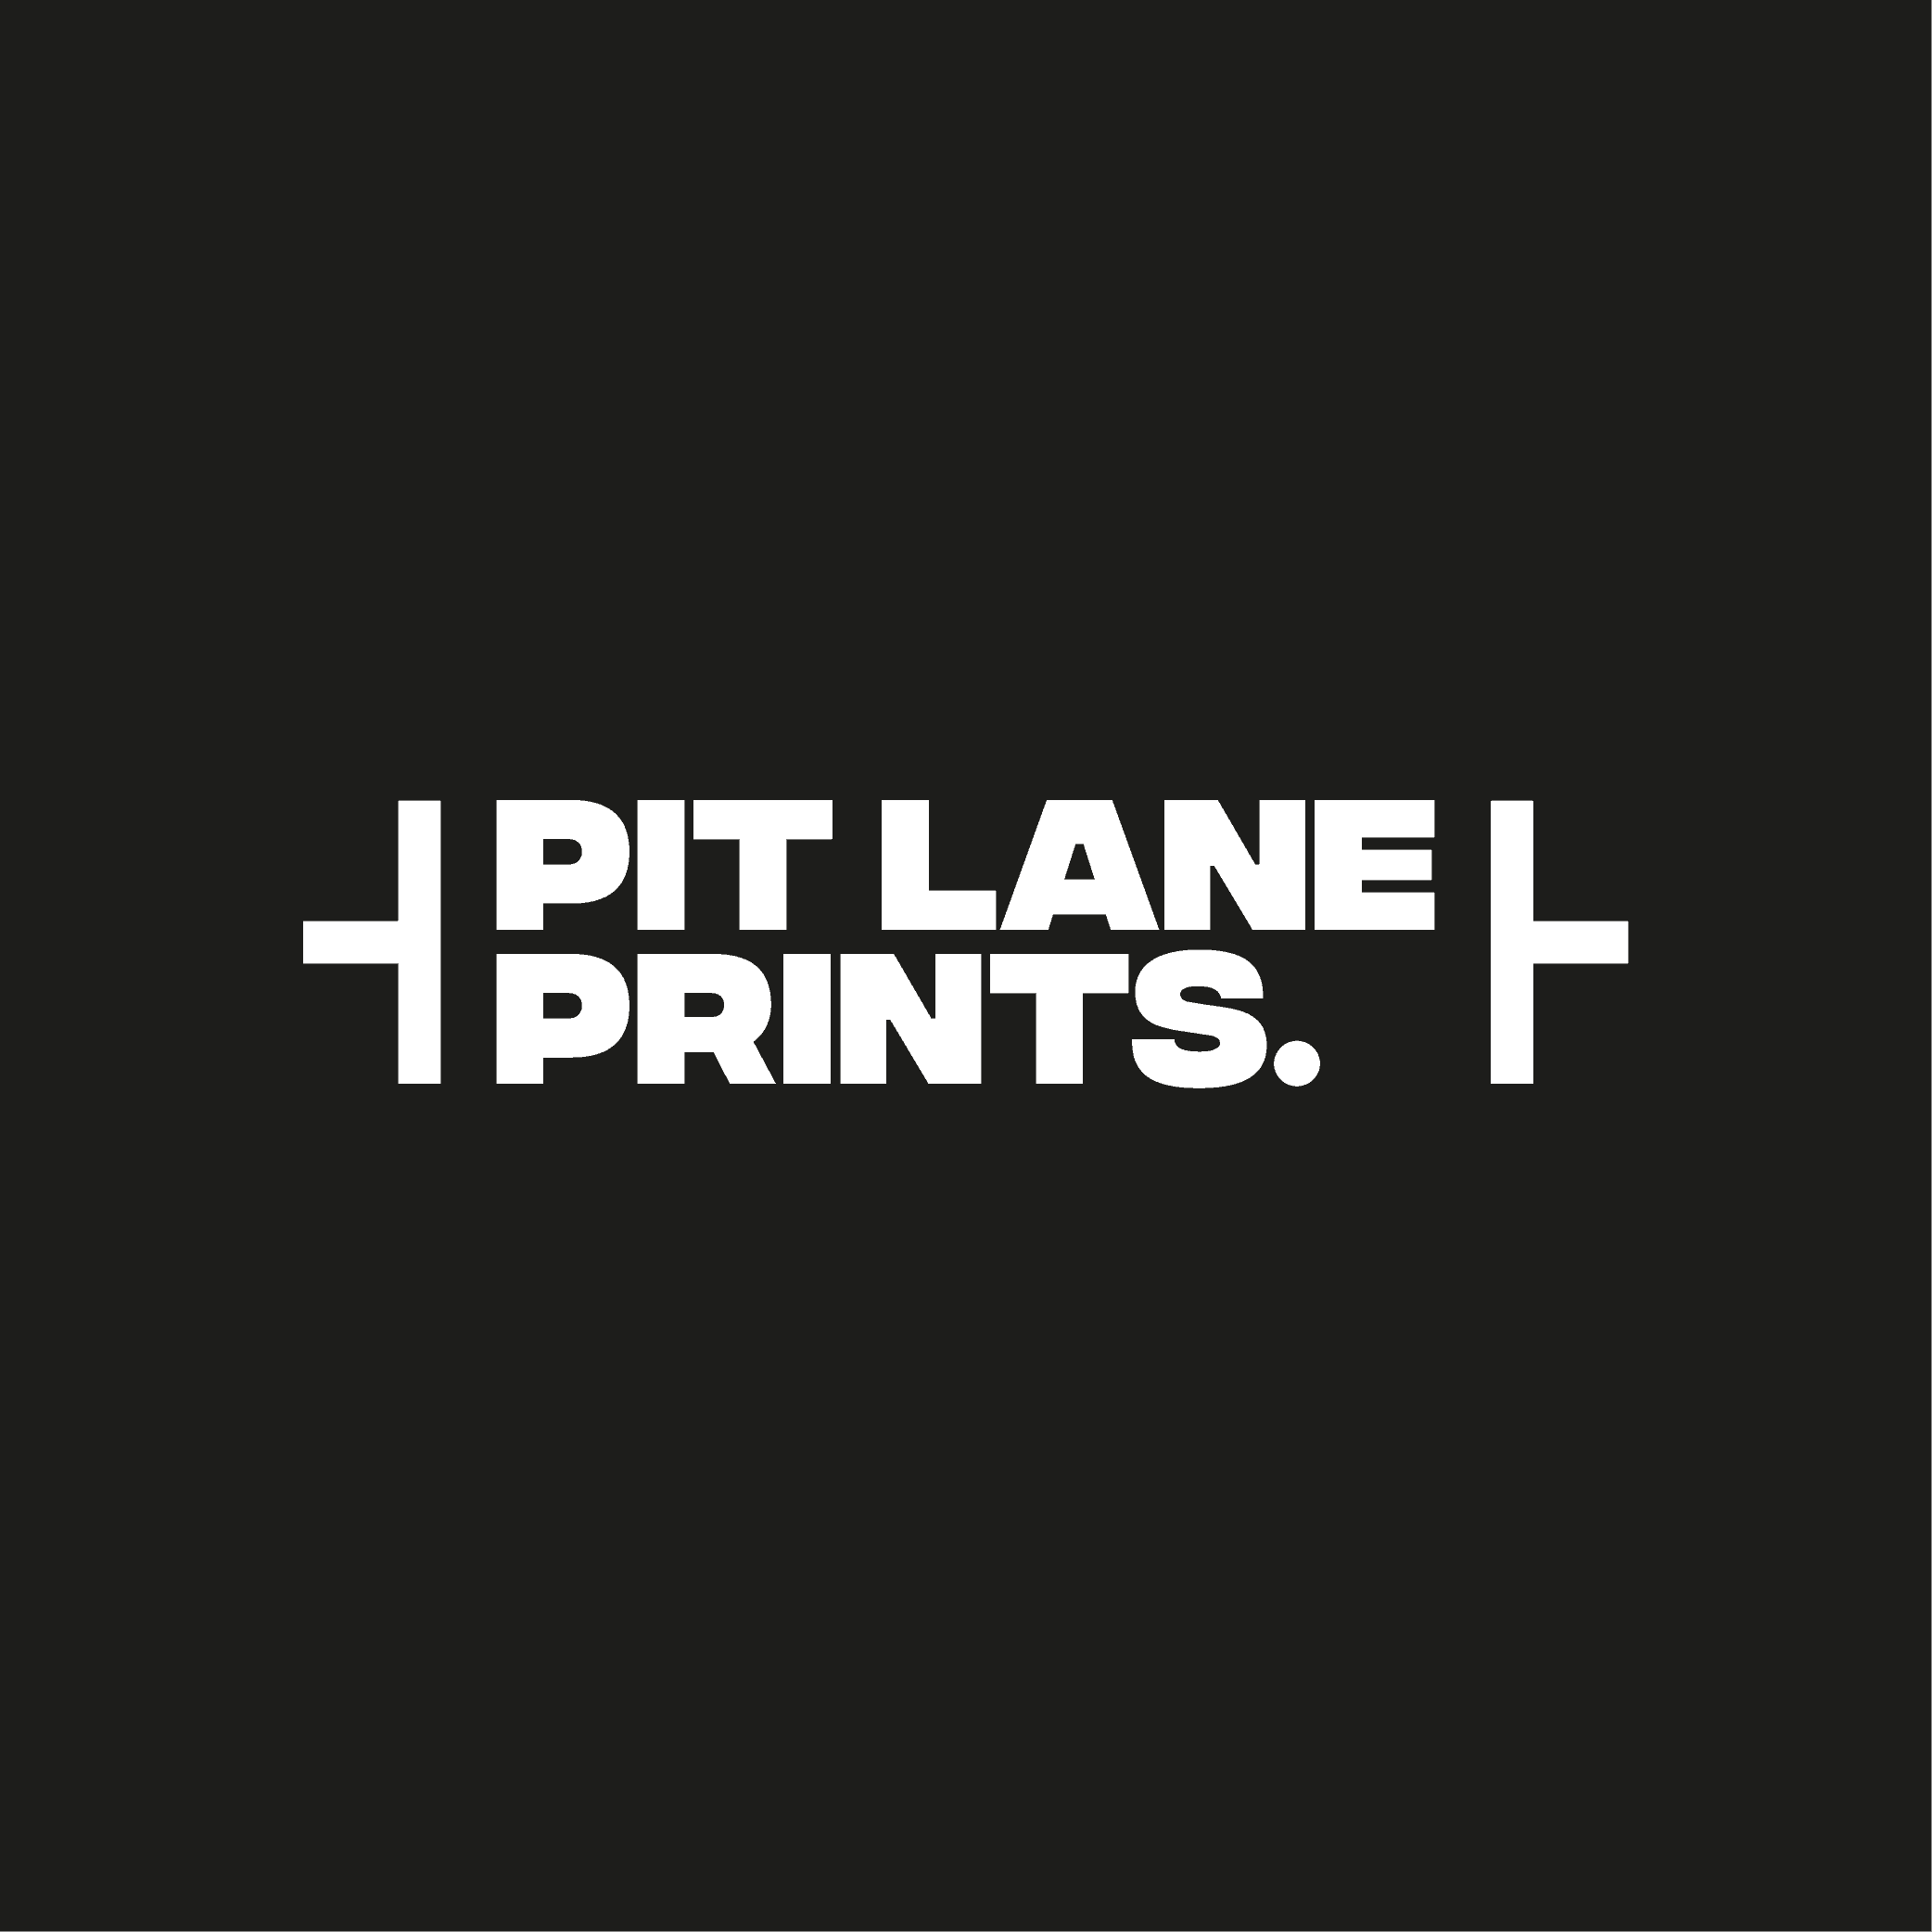 The GPBox - Pit Lane Prints